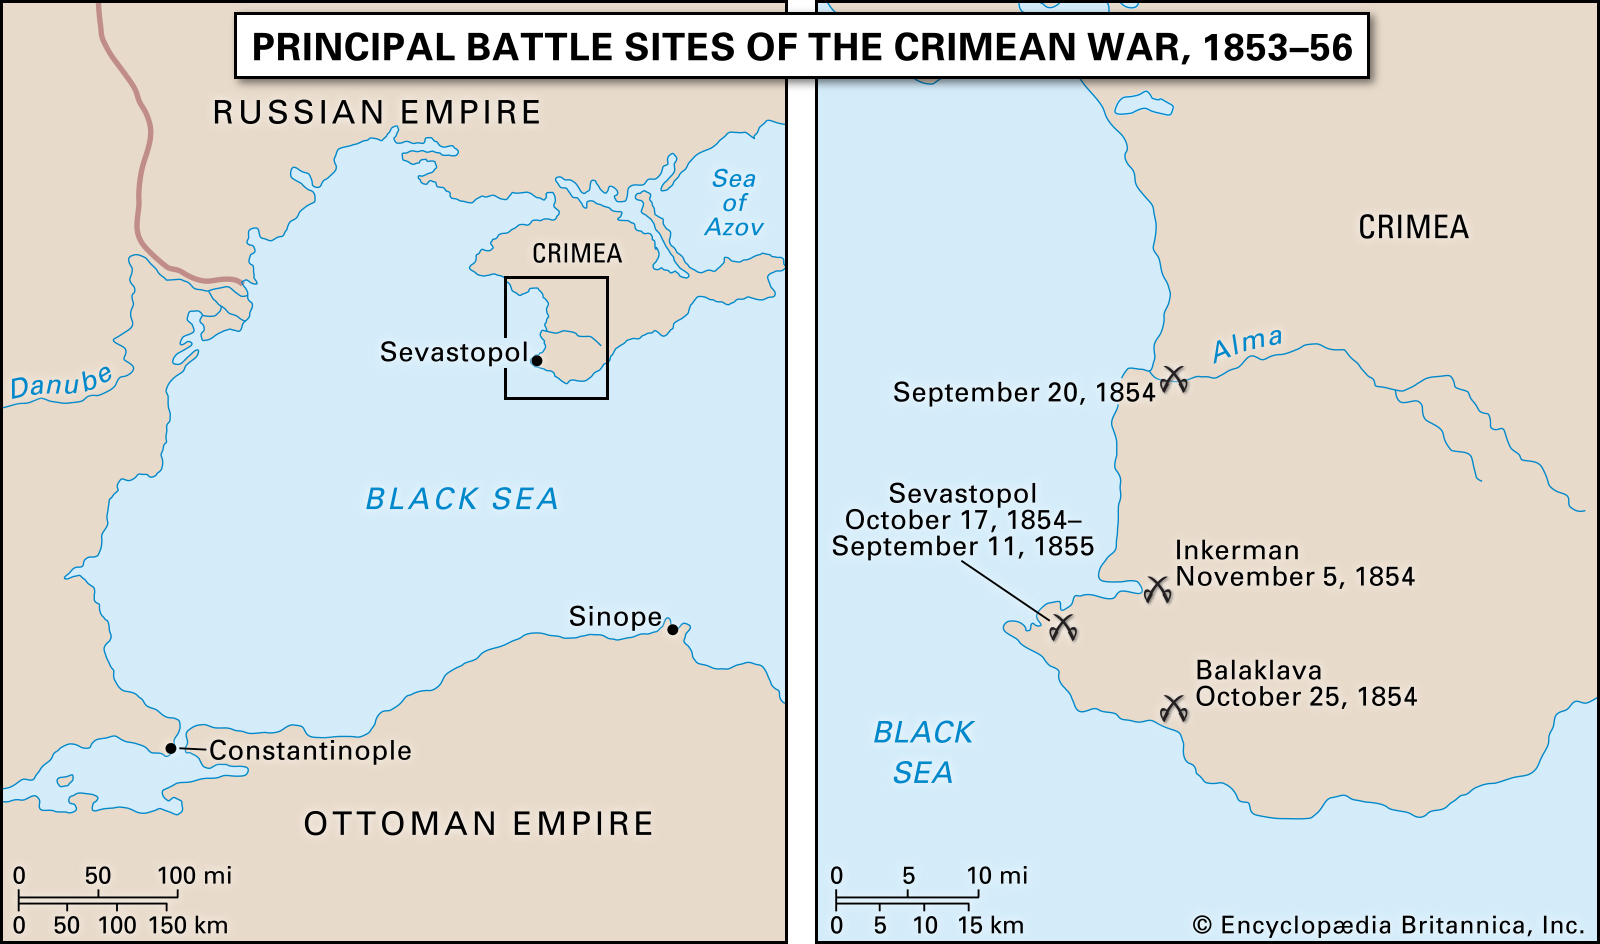 Battle sites and key locations in the Crimean War